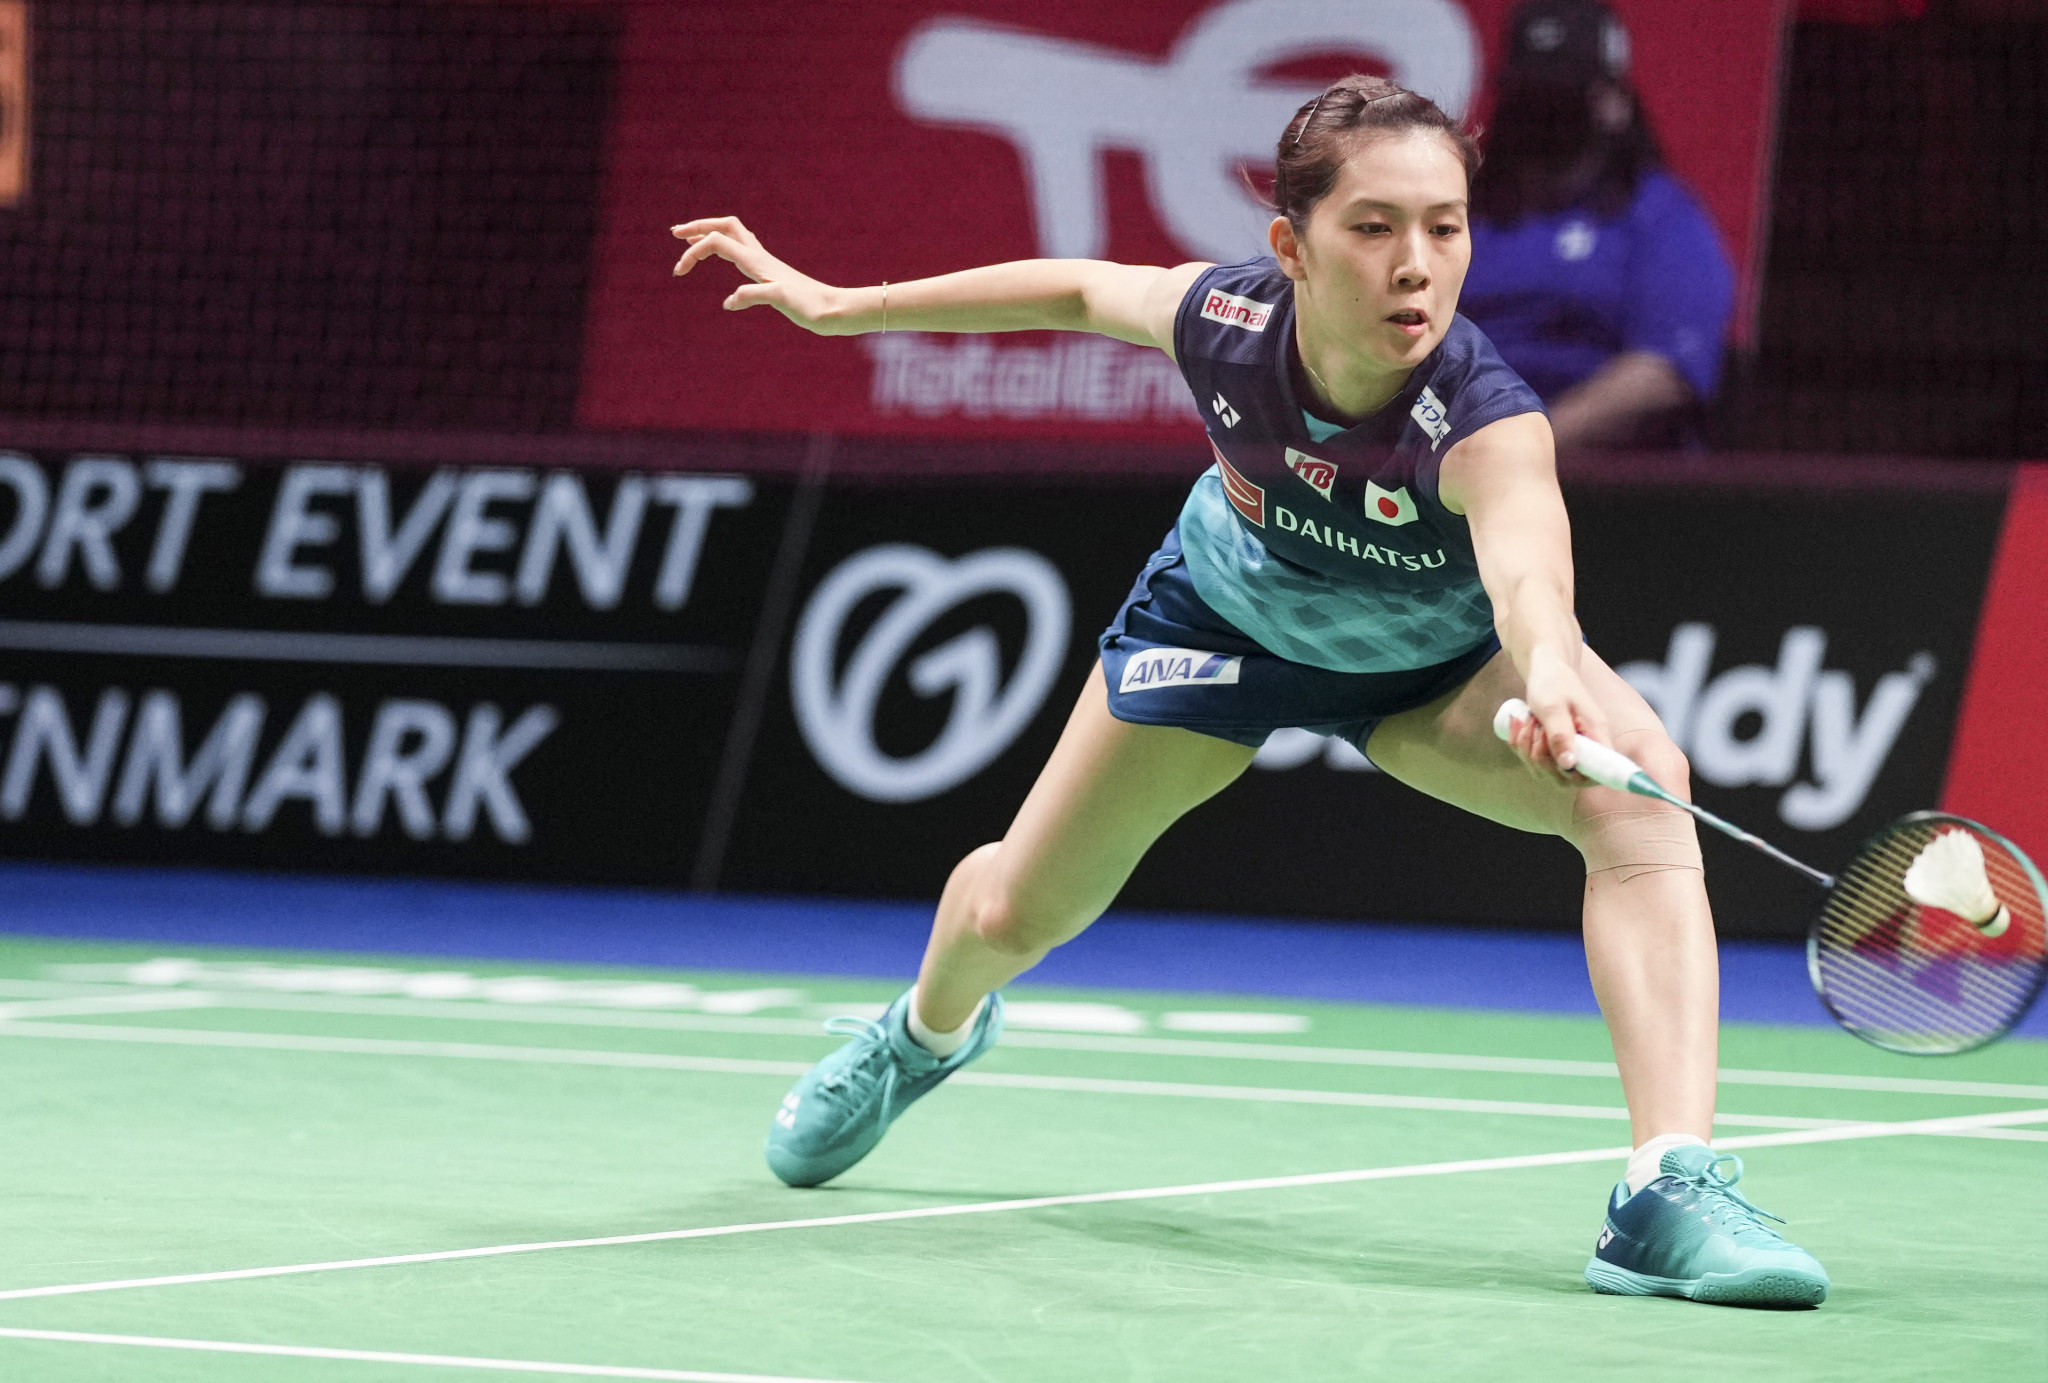 Japan and China ease to 5-0 wins on opening day at badminton's Uber Cup